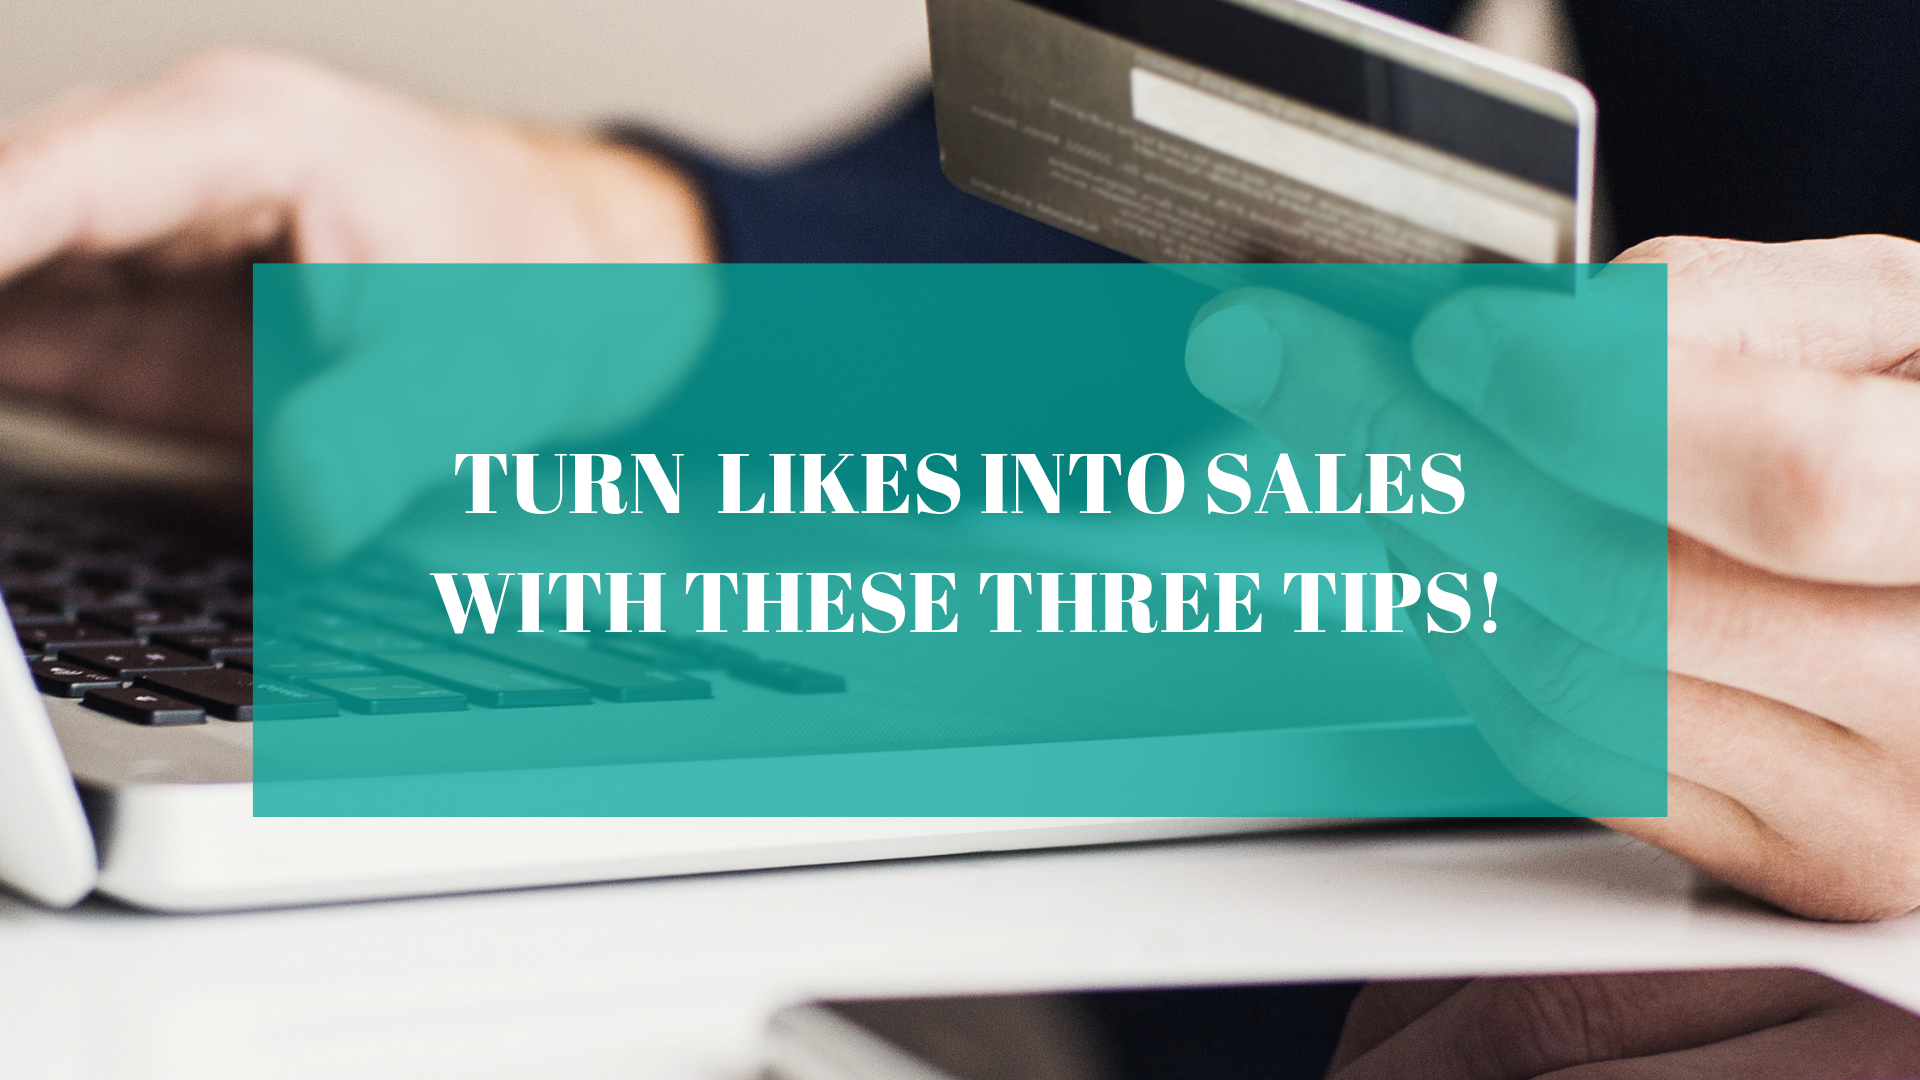 Convert Social Media Engagement Into Sales With These Three Tips!